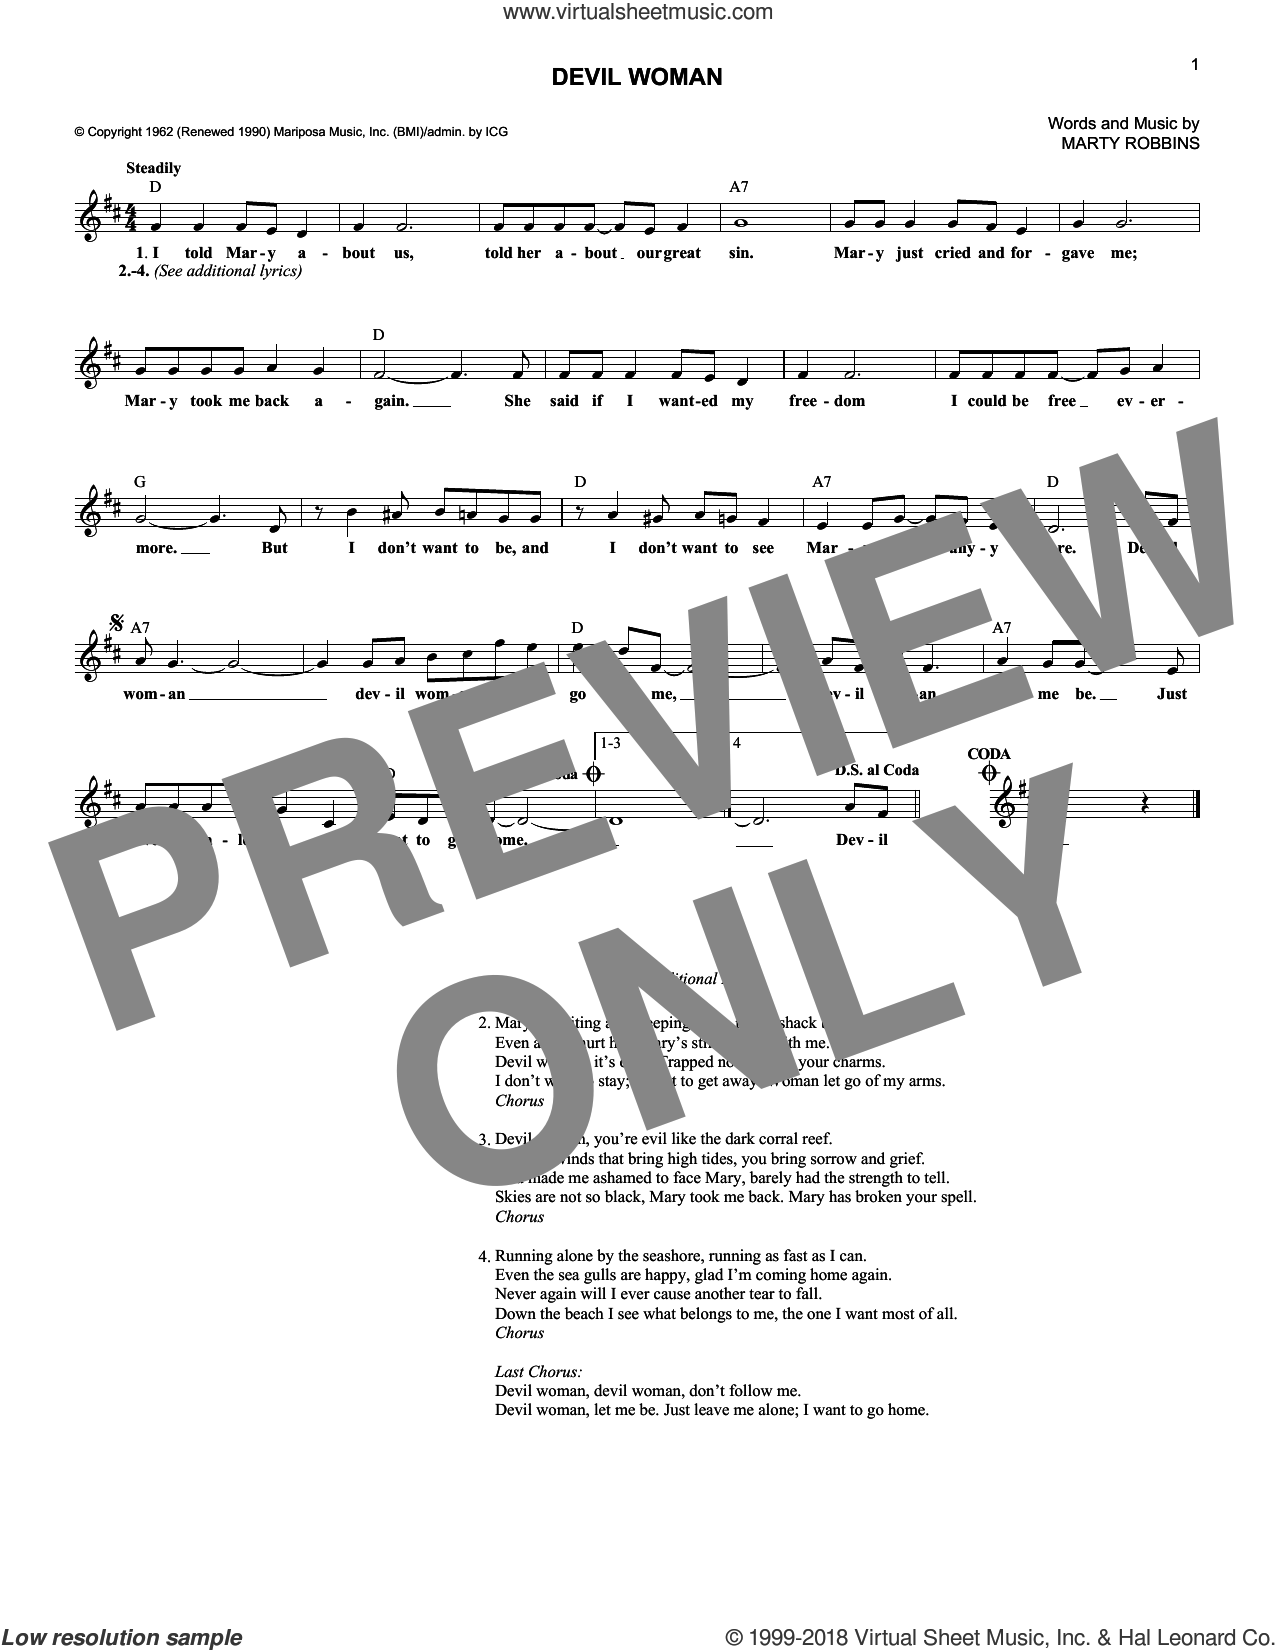 Devil Woman sheet music for voice and other instruments (fake book) by Marty Robbins, intermediate skill level